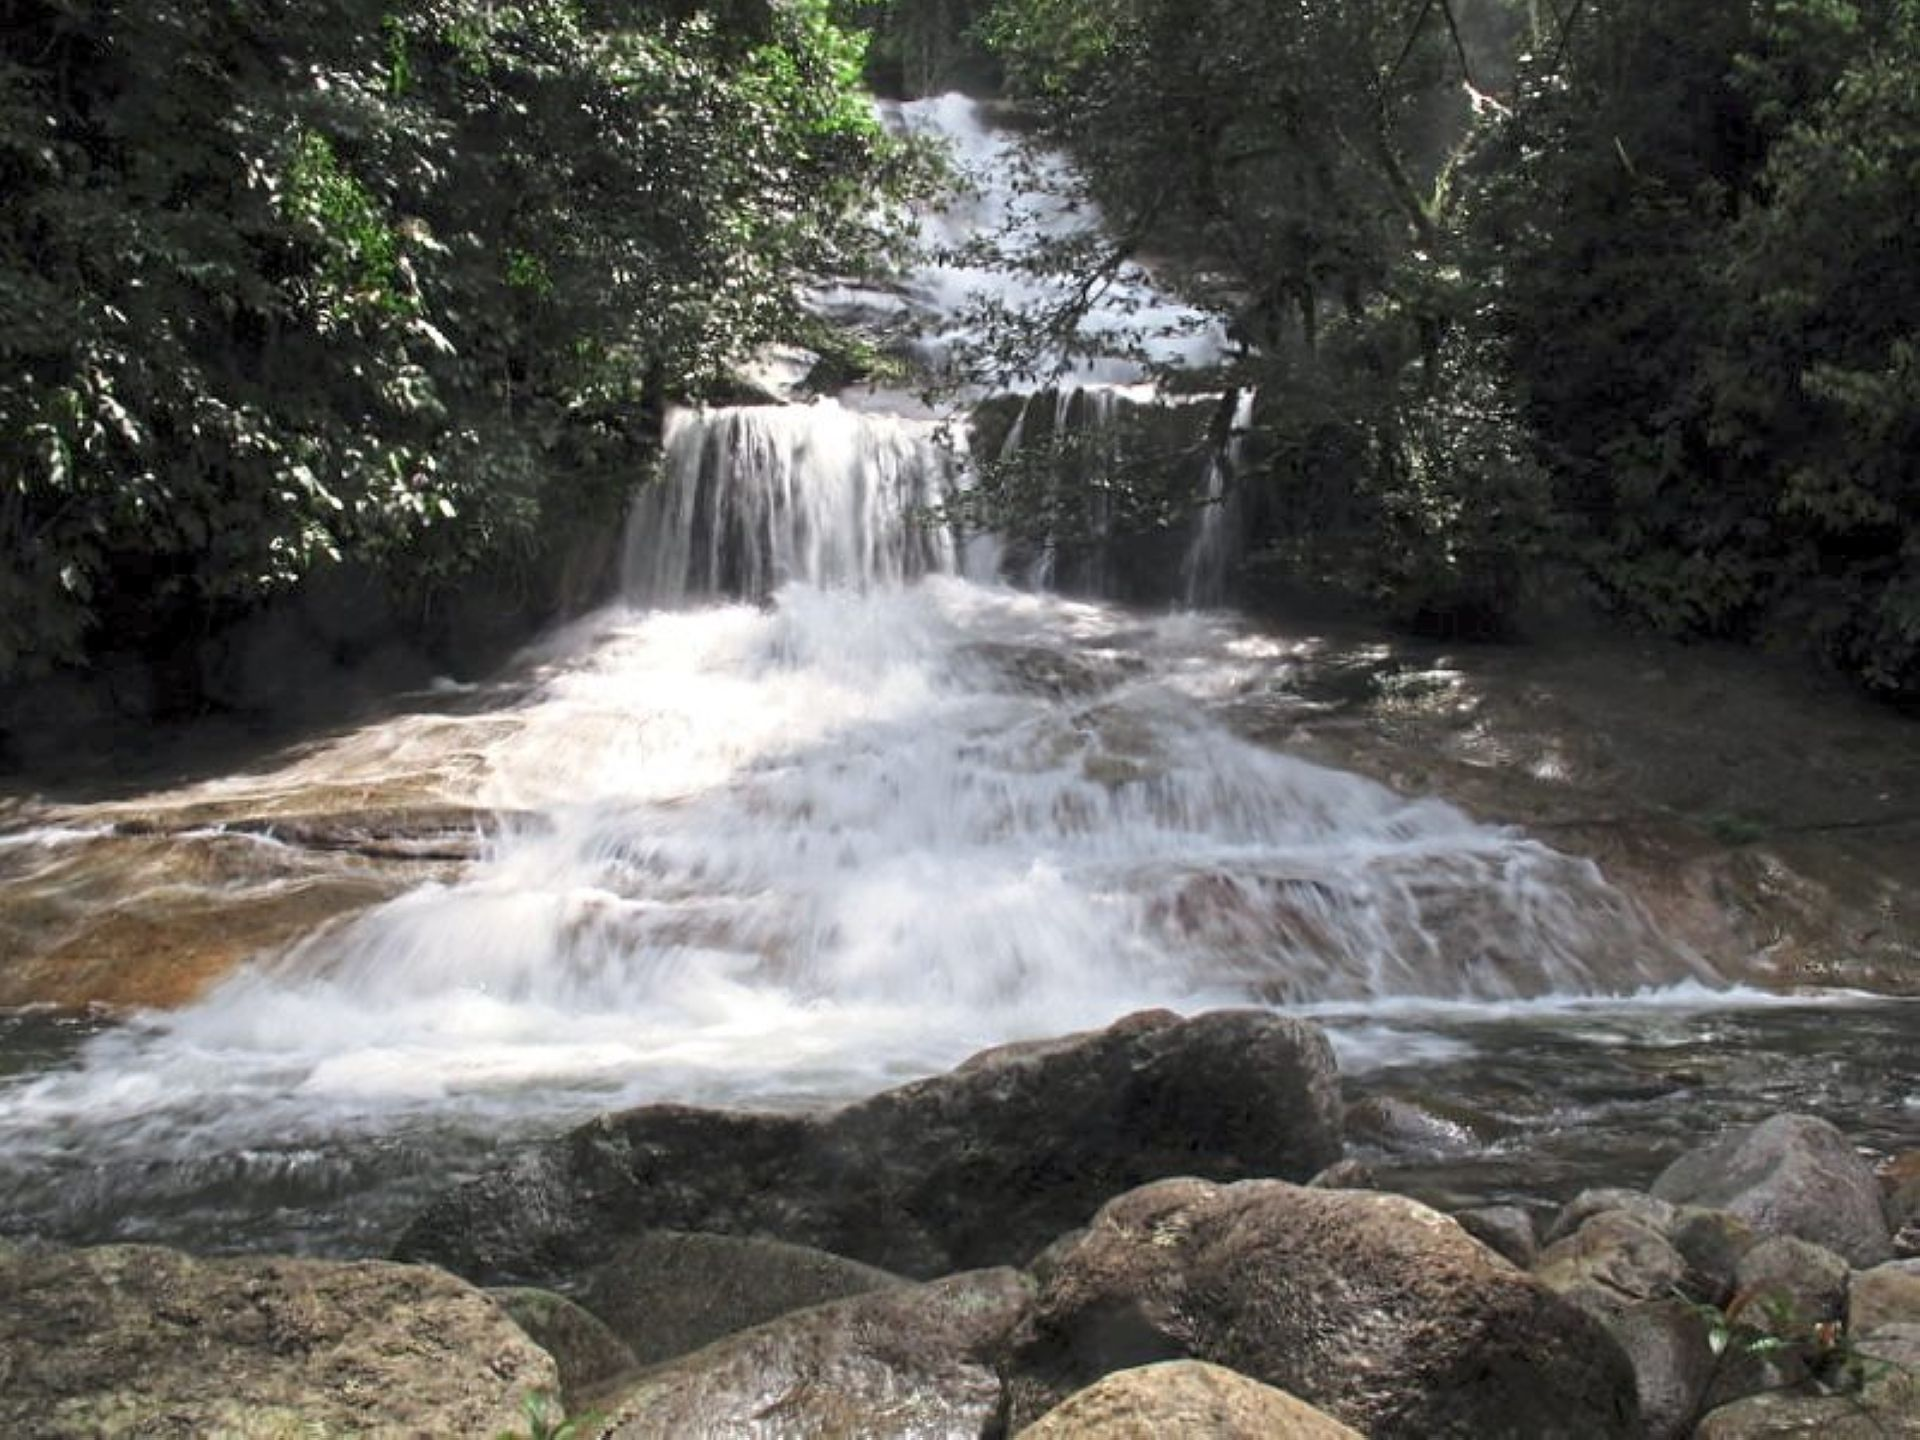 Lata Medang is adjacent to an Orang Asli village.